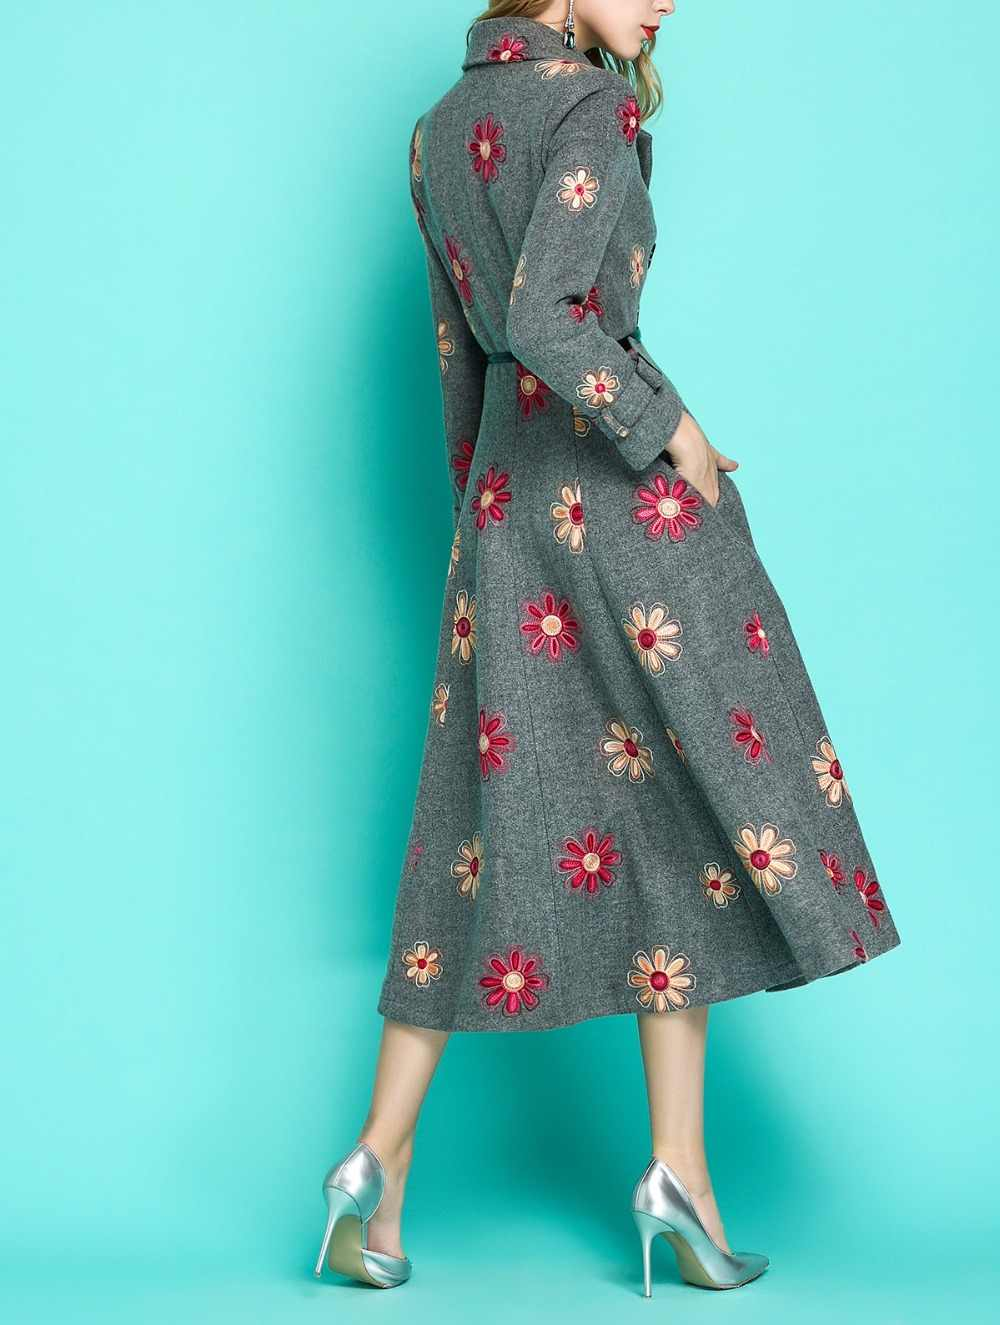 Embroidered Flower Women/'s Trench Long Coat Round Collar Warm Wool Blend Casual